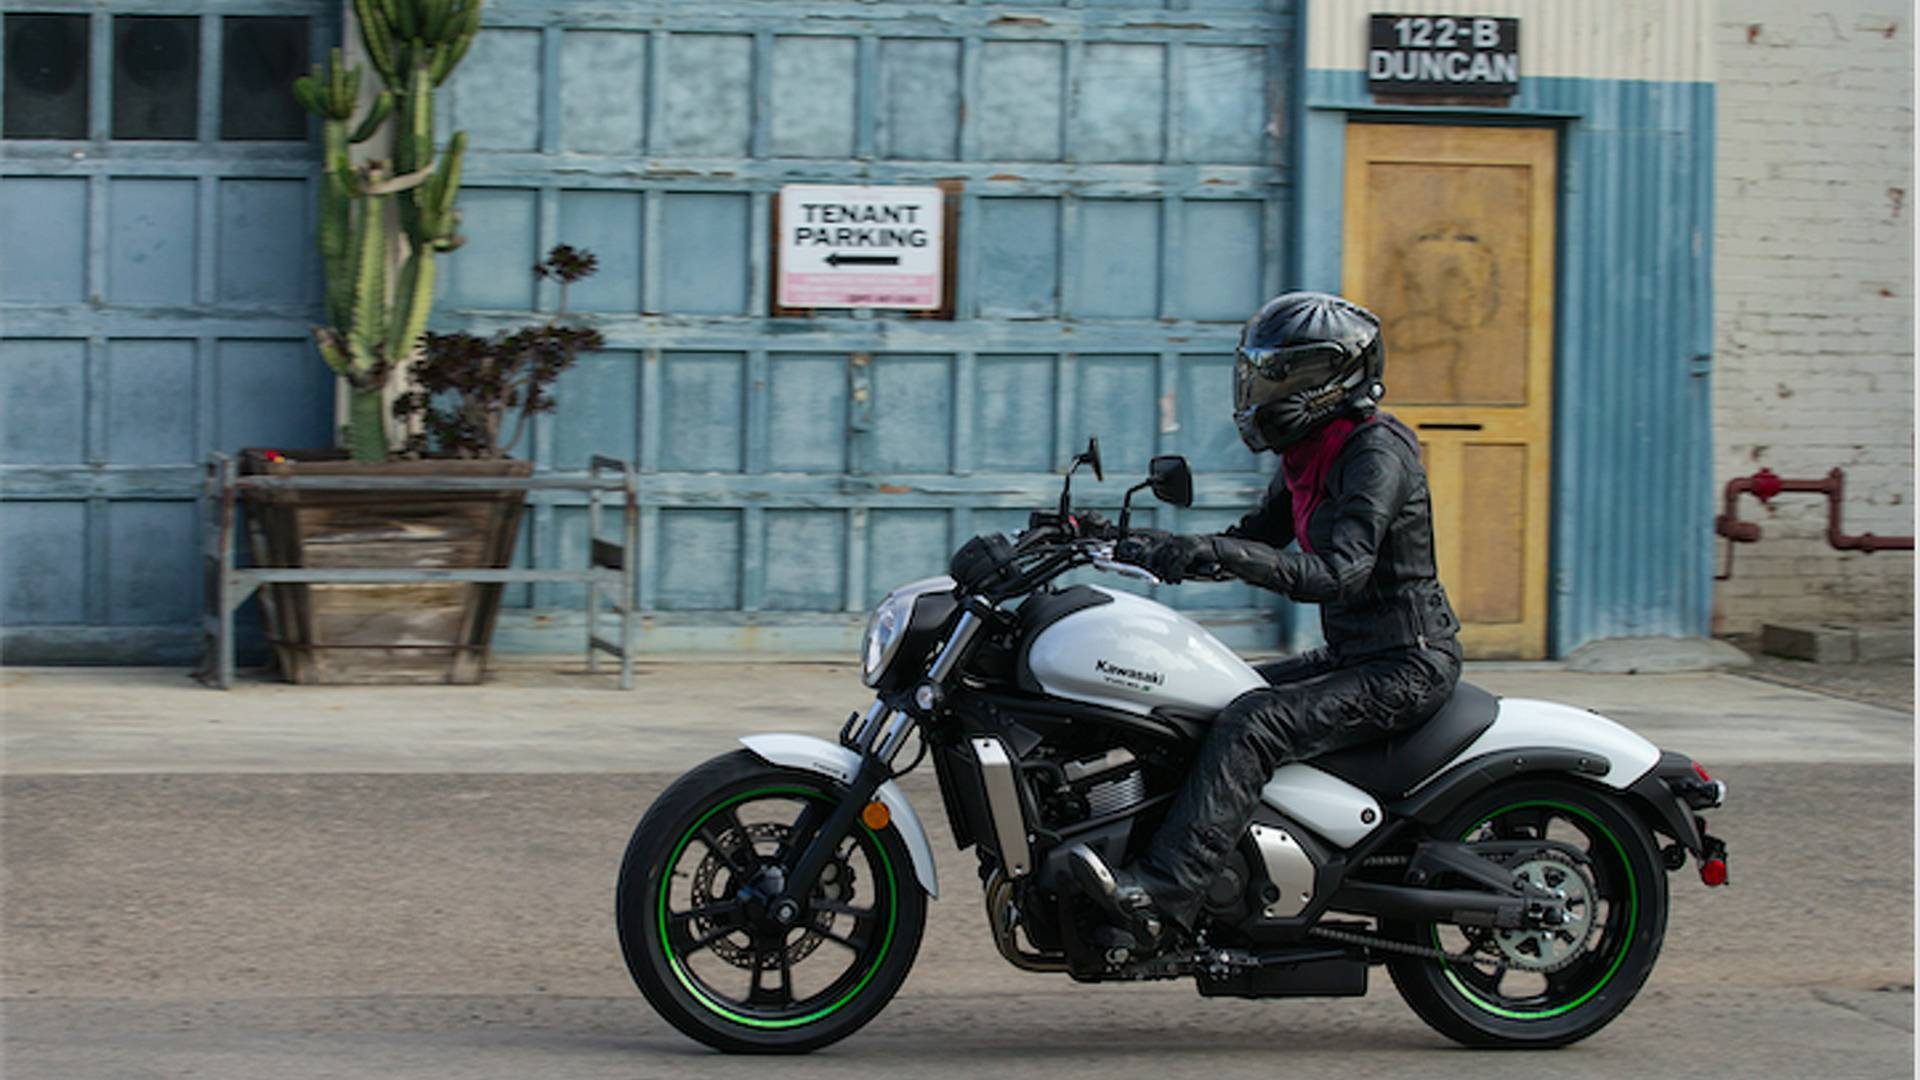 The Kawasaki Vulcan S Riding Impressions From A Small Fry Beginner